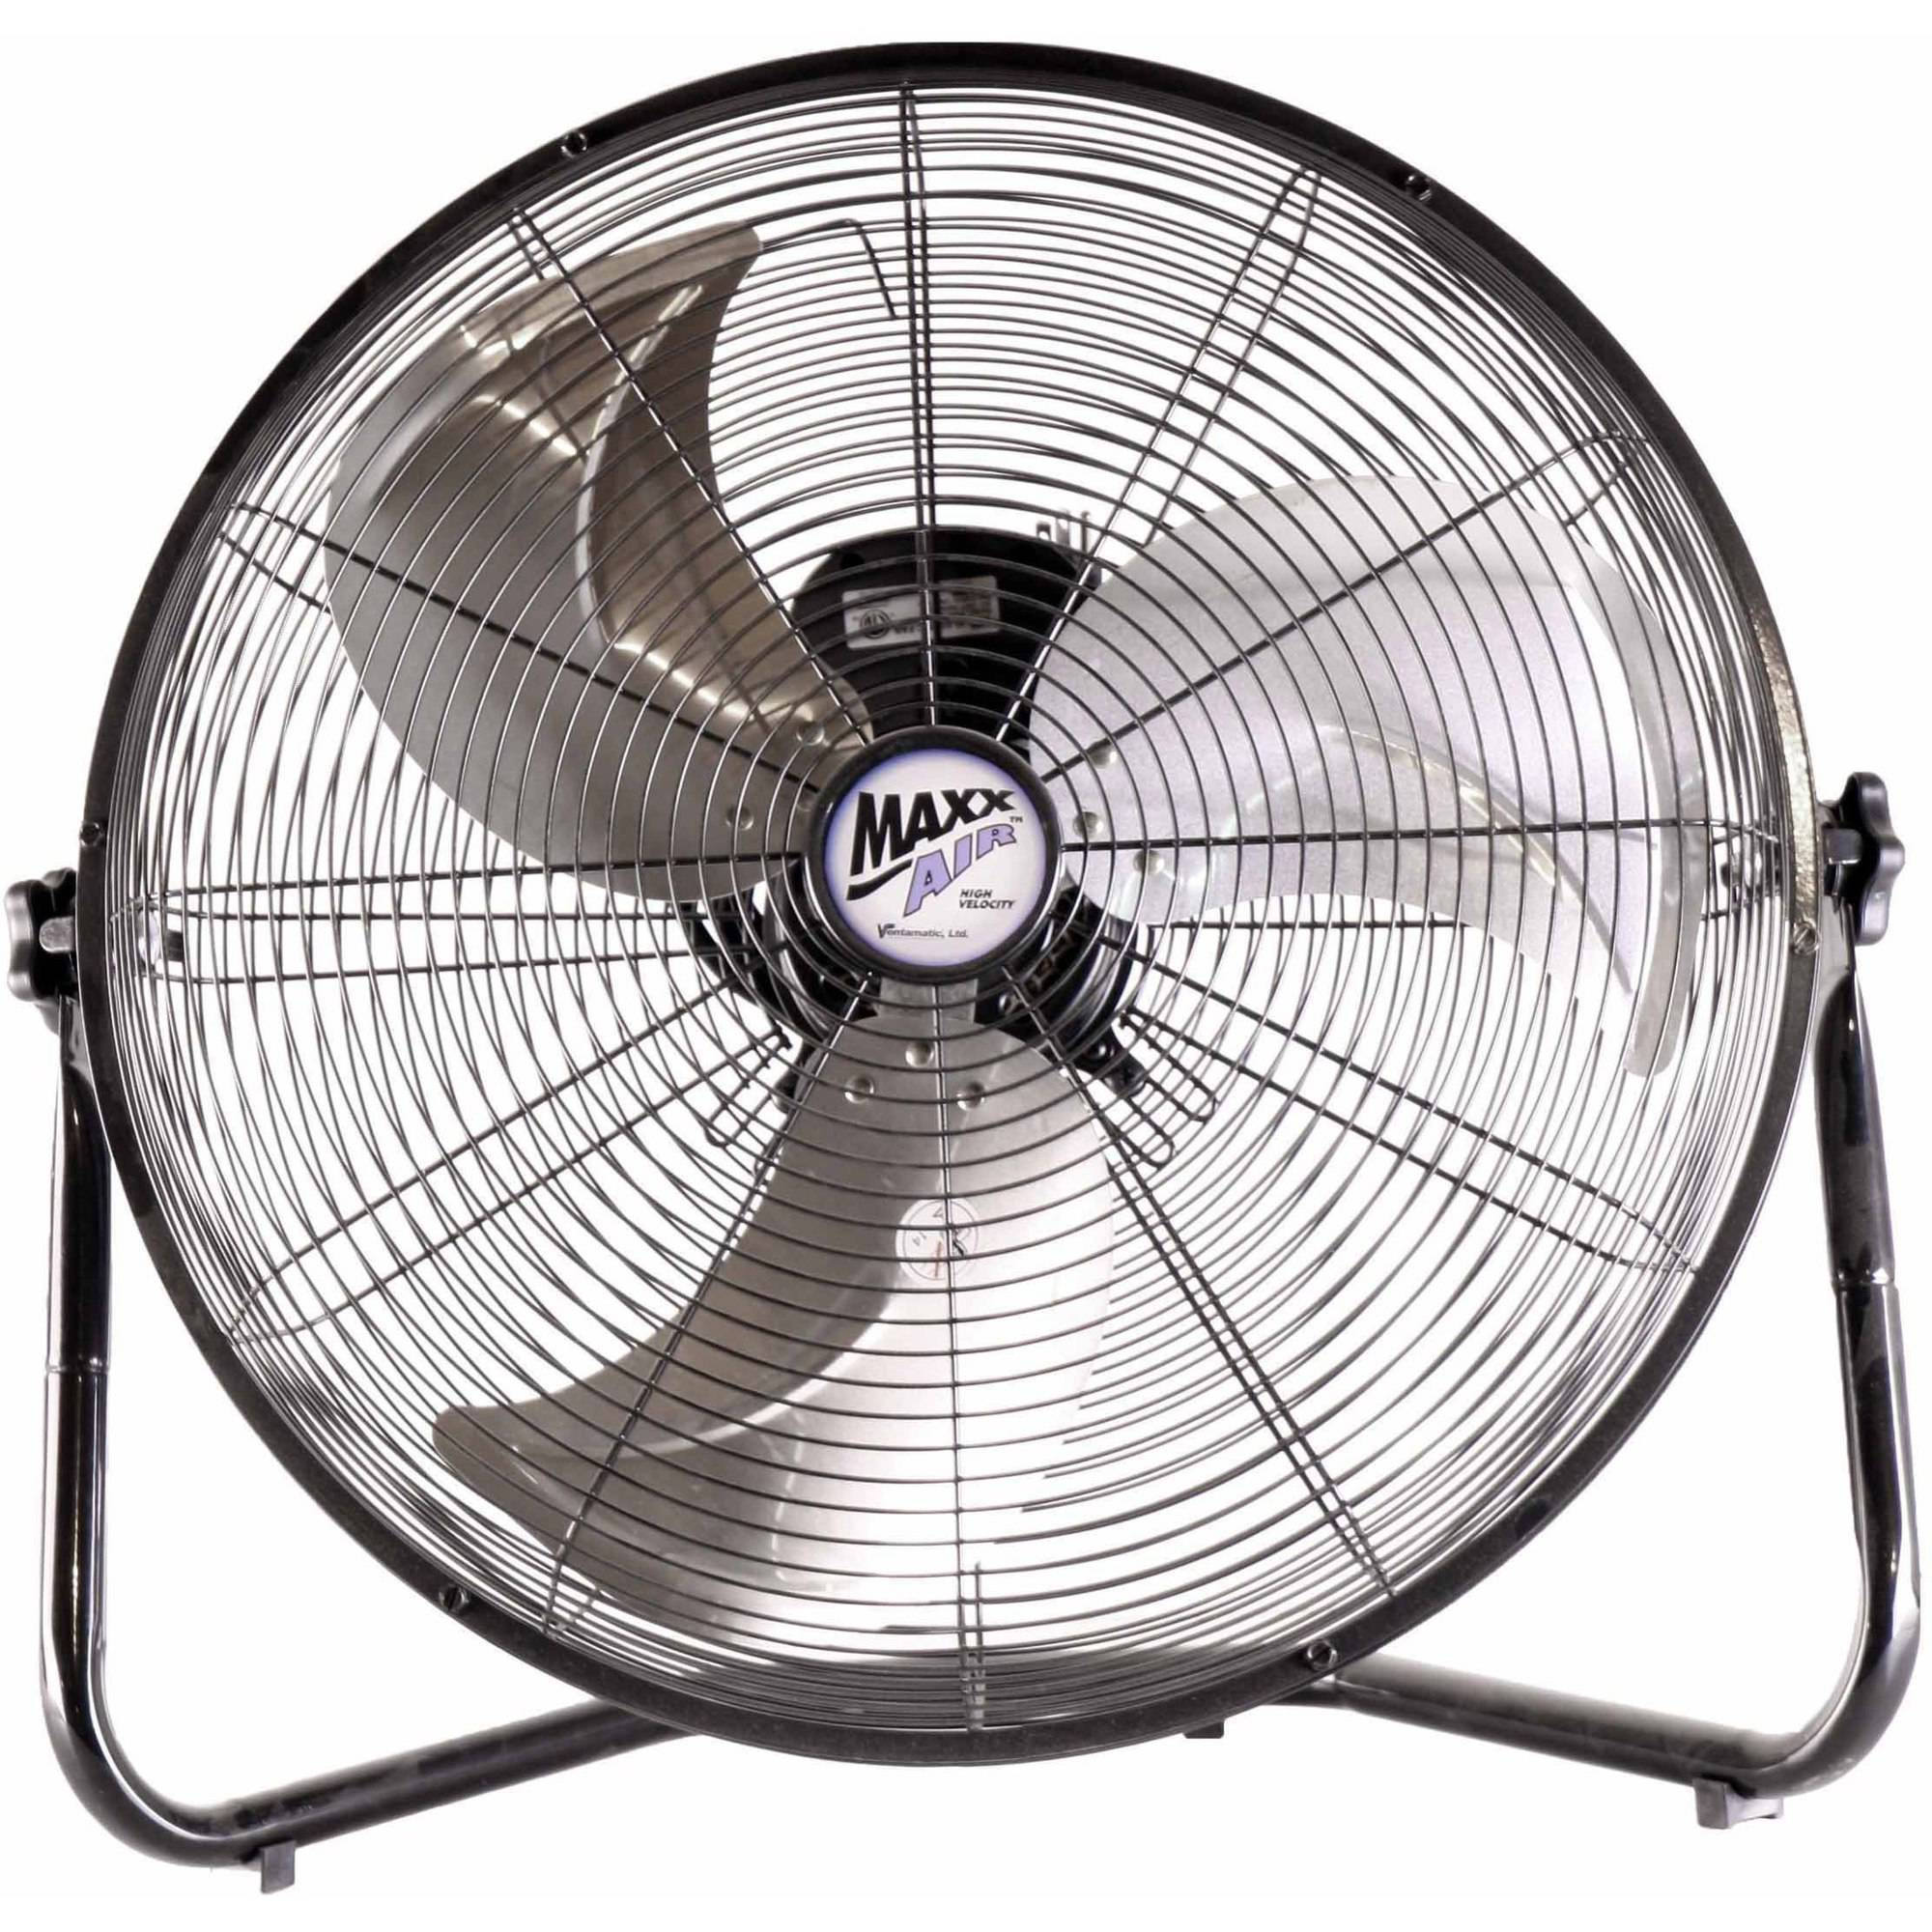 "MaxxAir 20"" High Velocity Floor Fan"